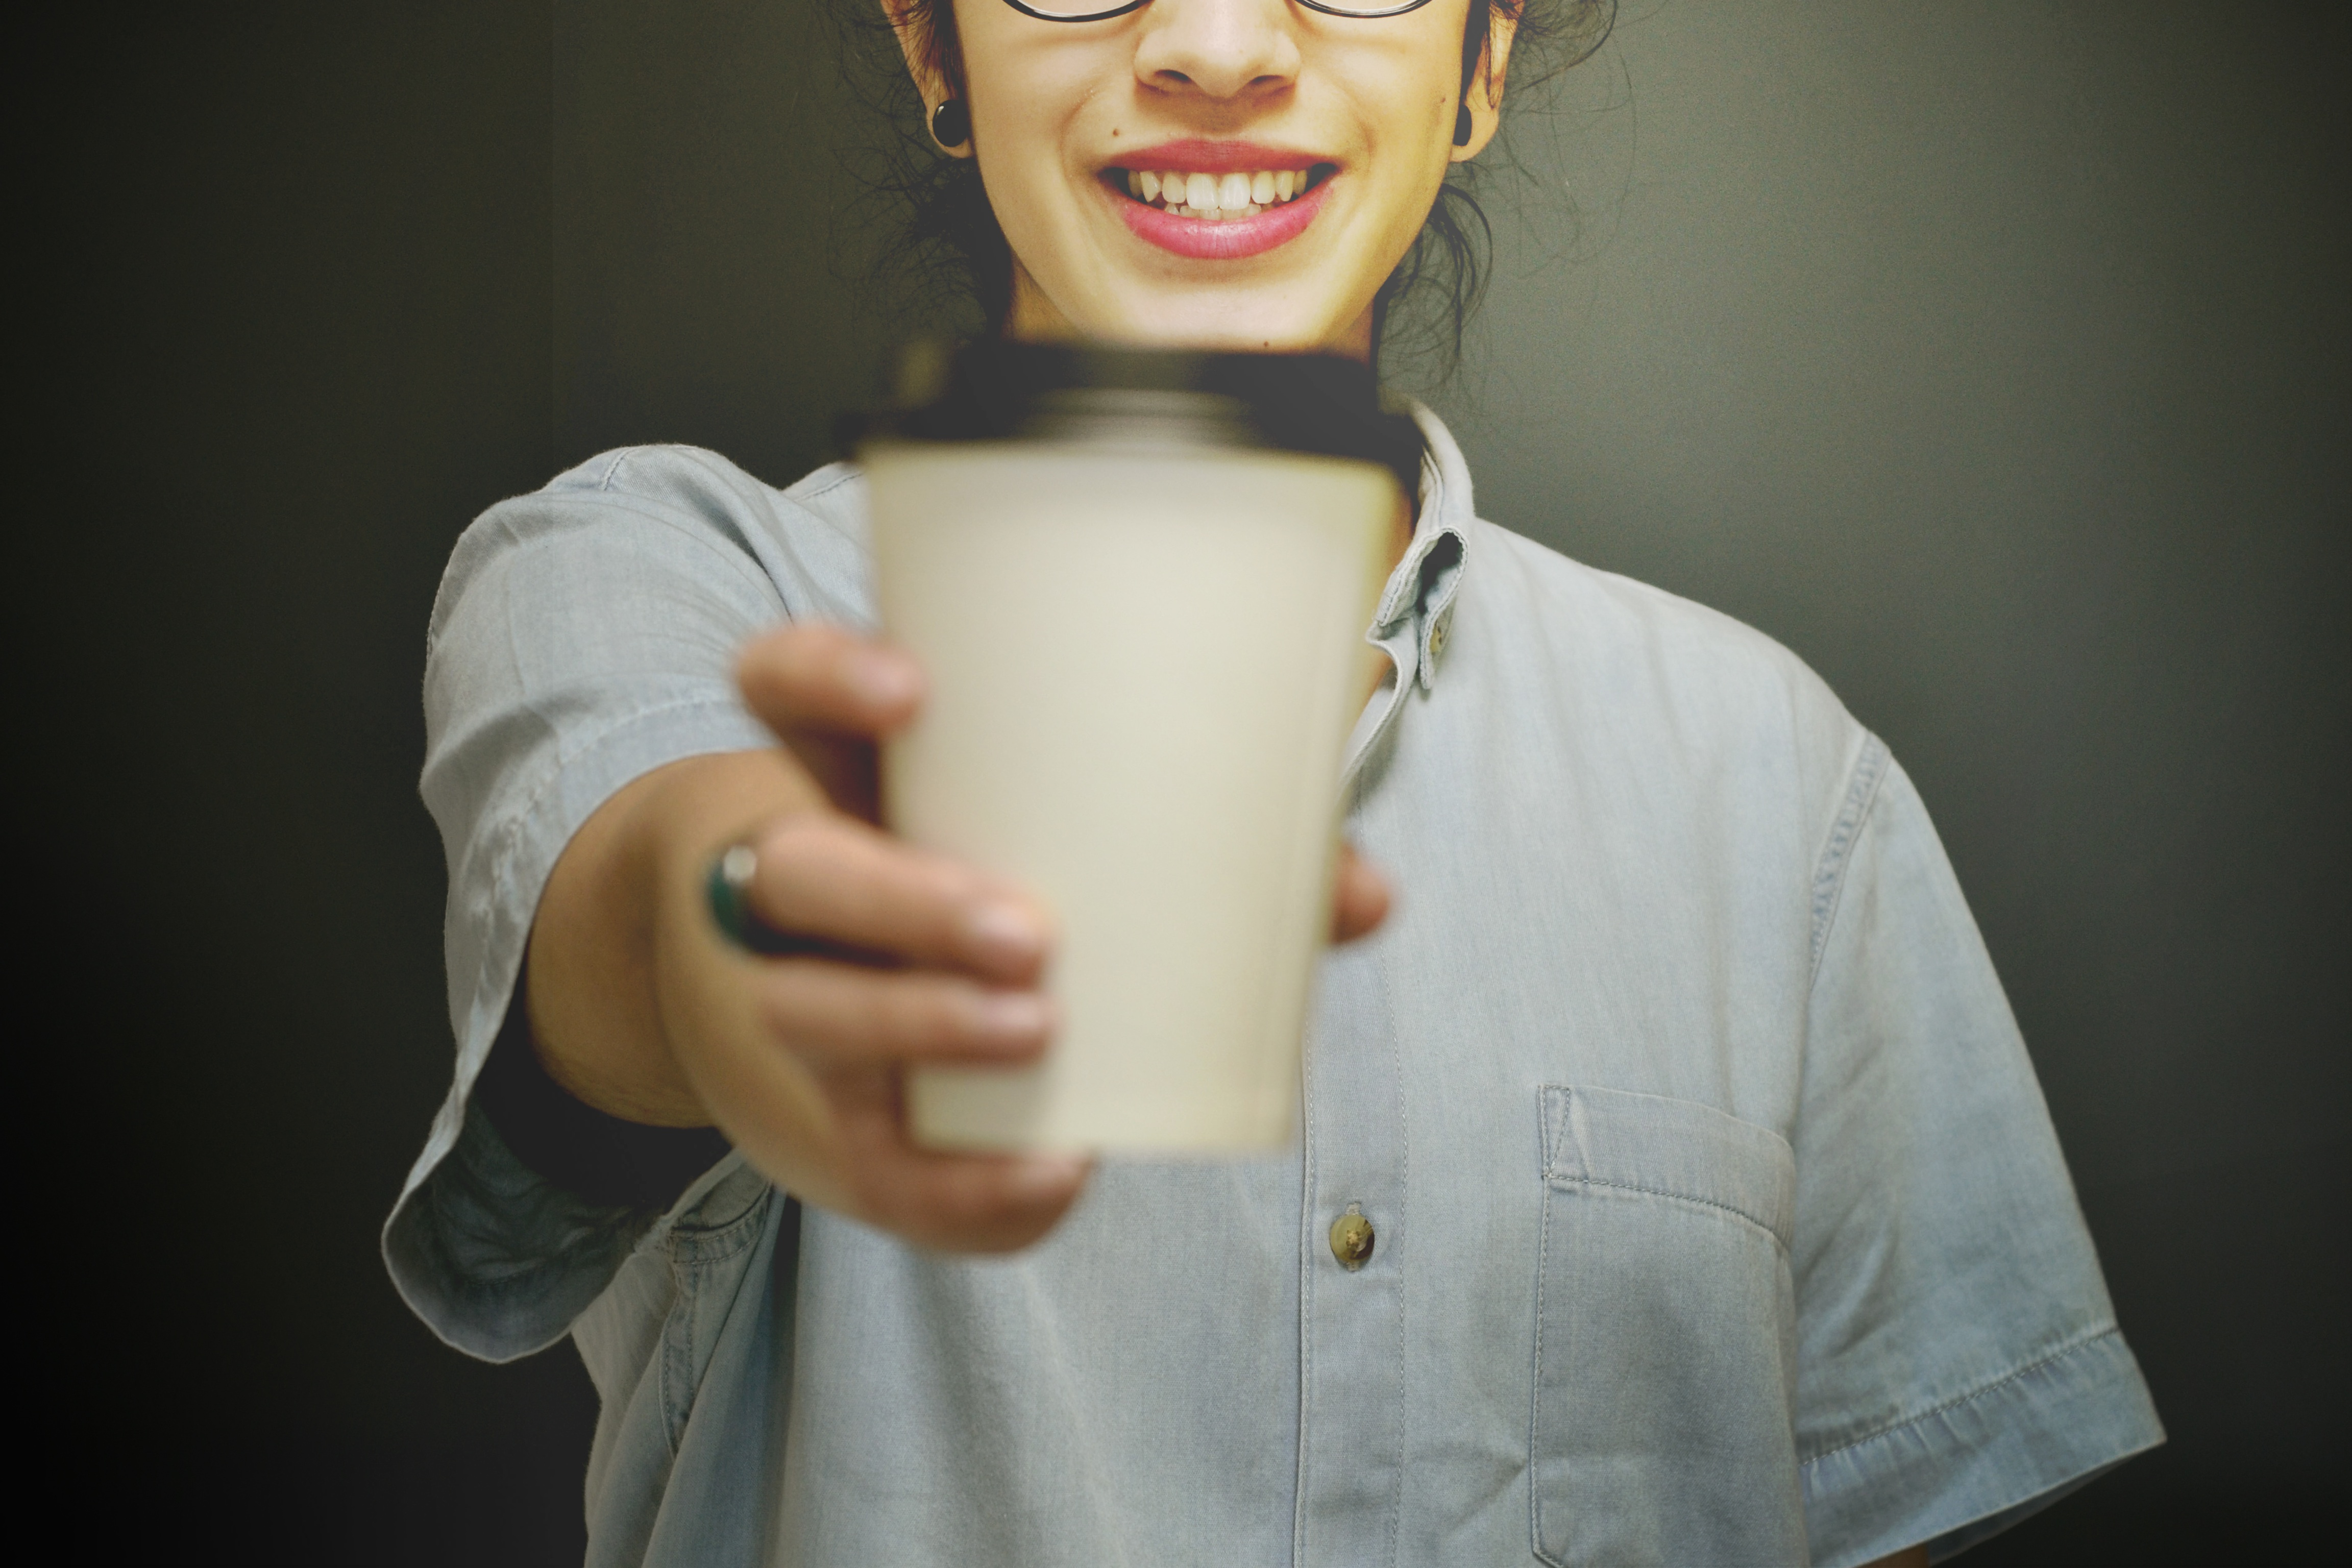 A smiling person holding a coffee.